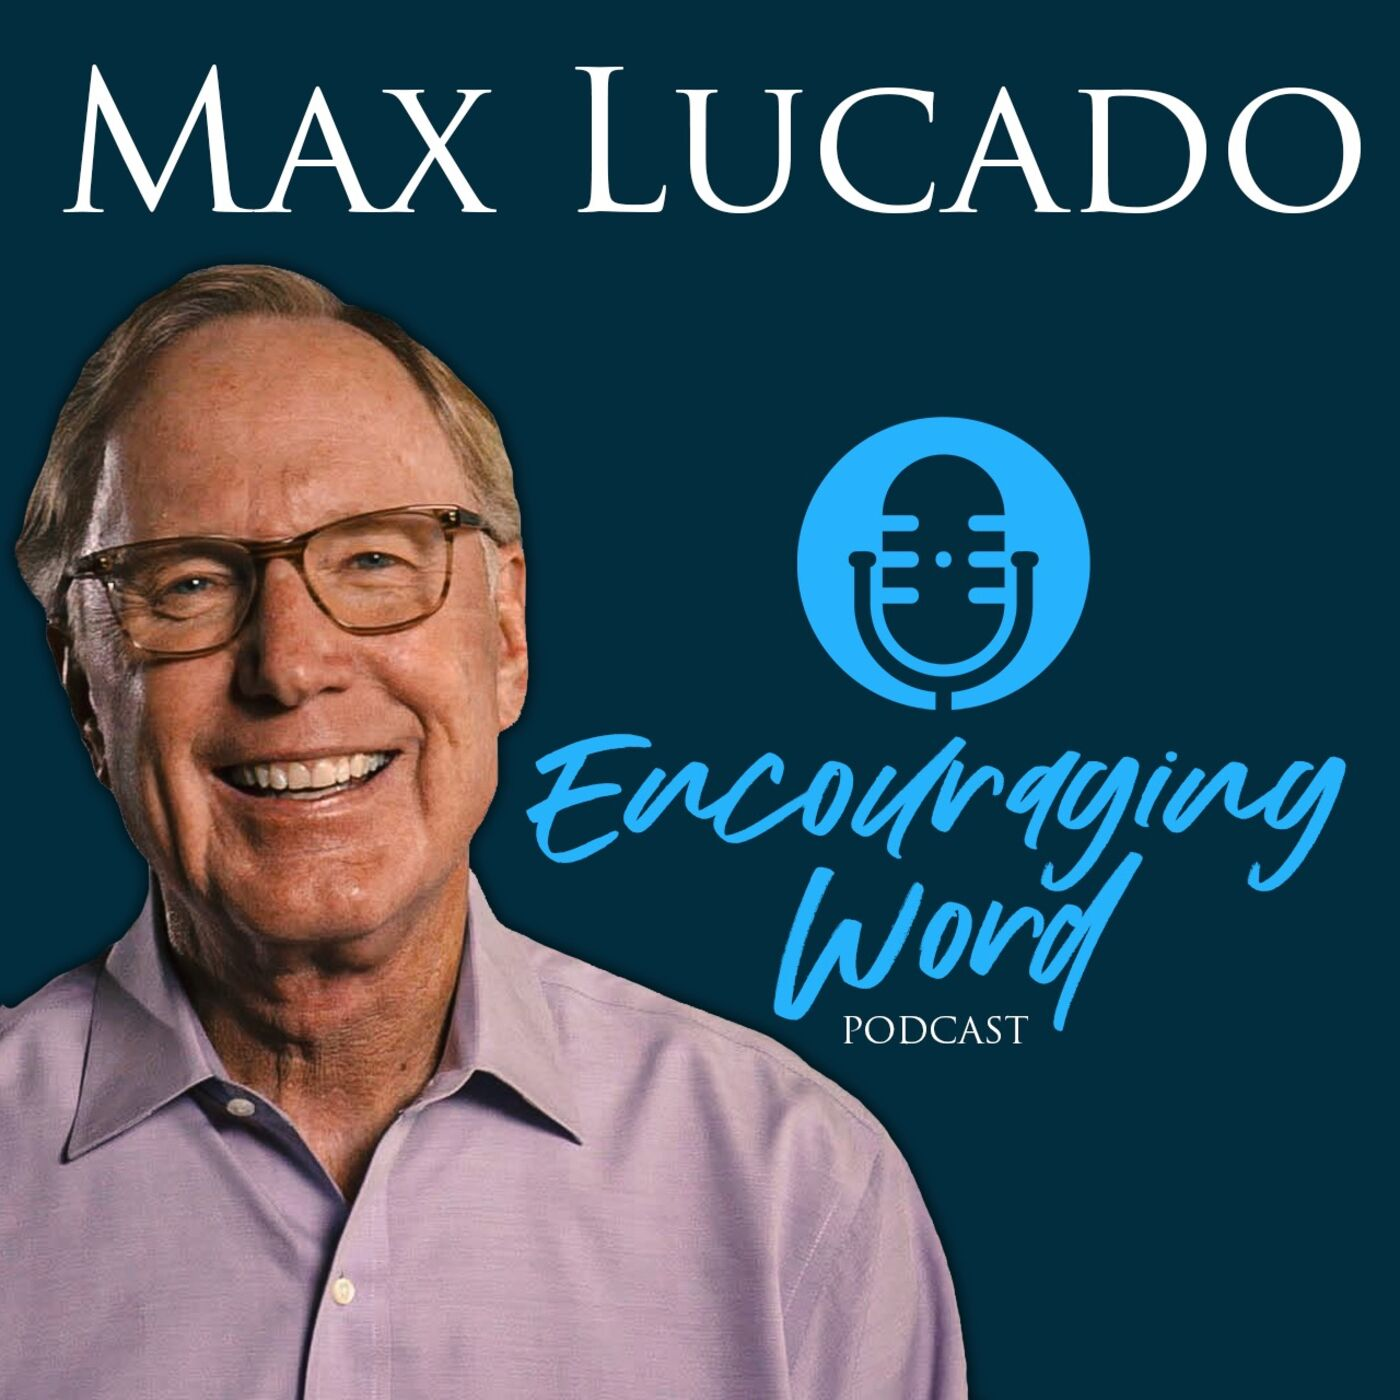 The Max Lucado Encouraging Word Podcast